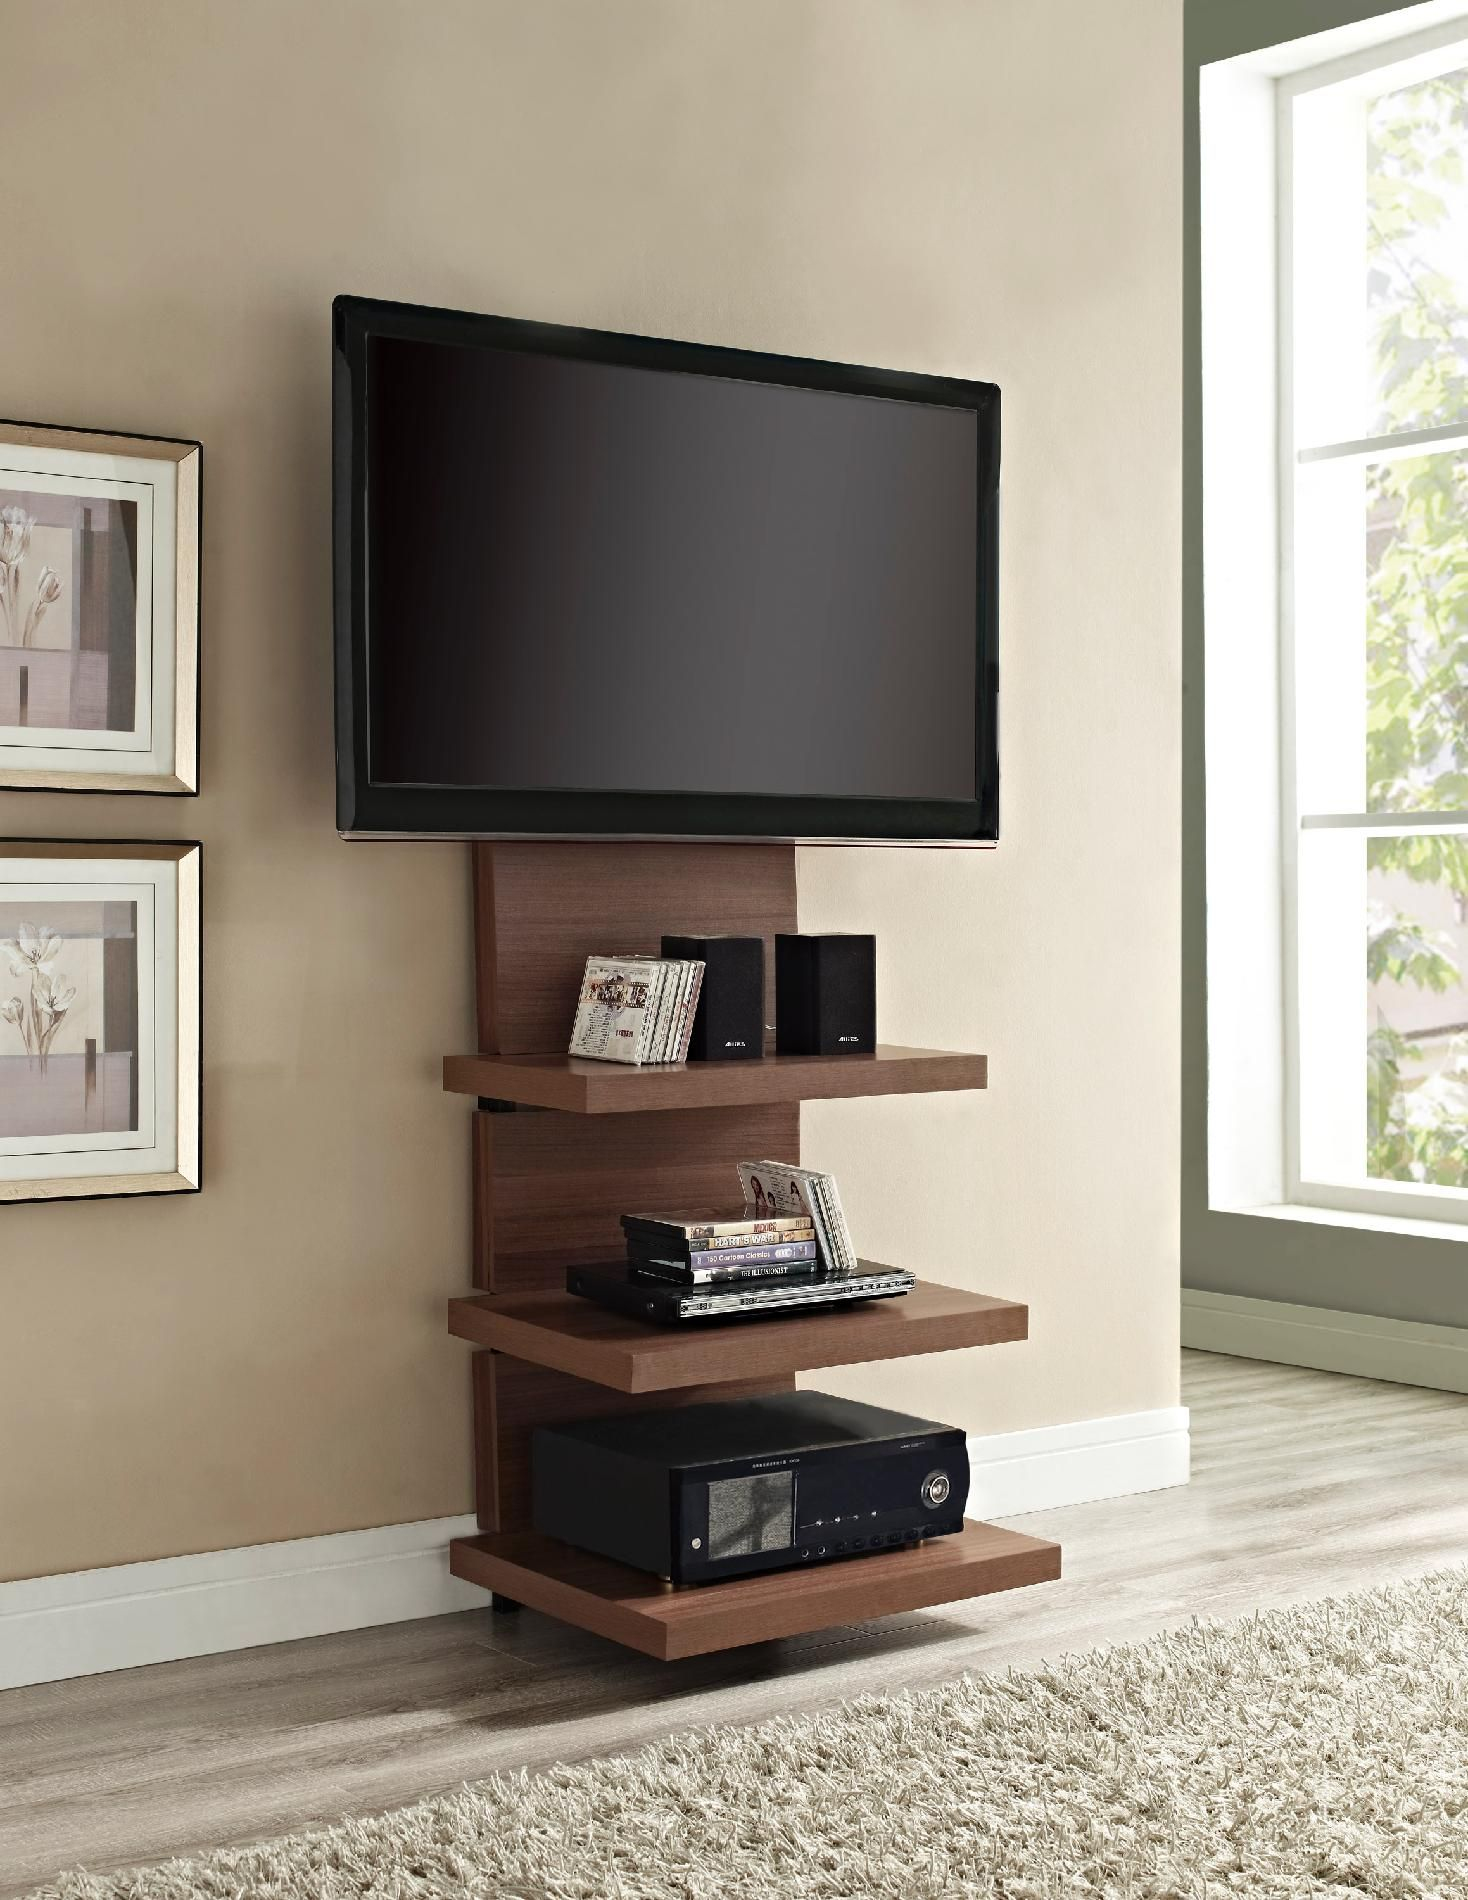 Bedroom Tv Wall Mount Of Engaging Ideas On Chic And Modern